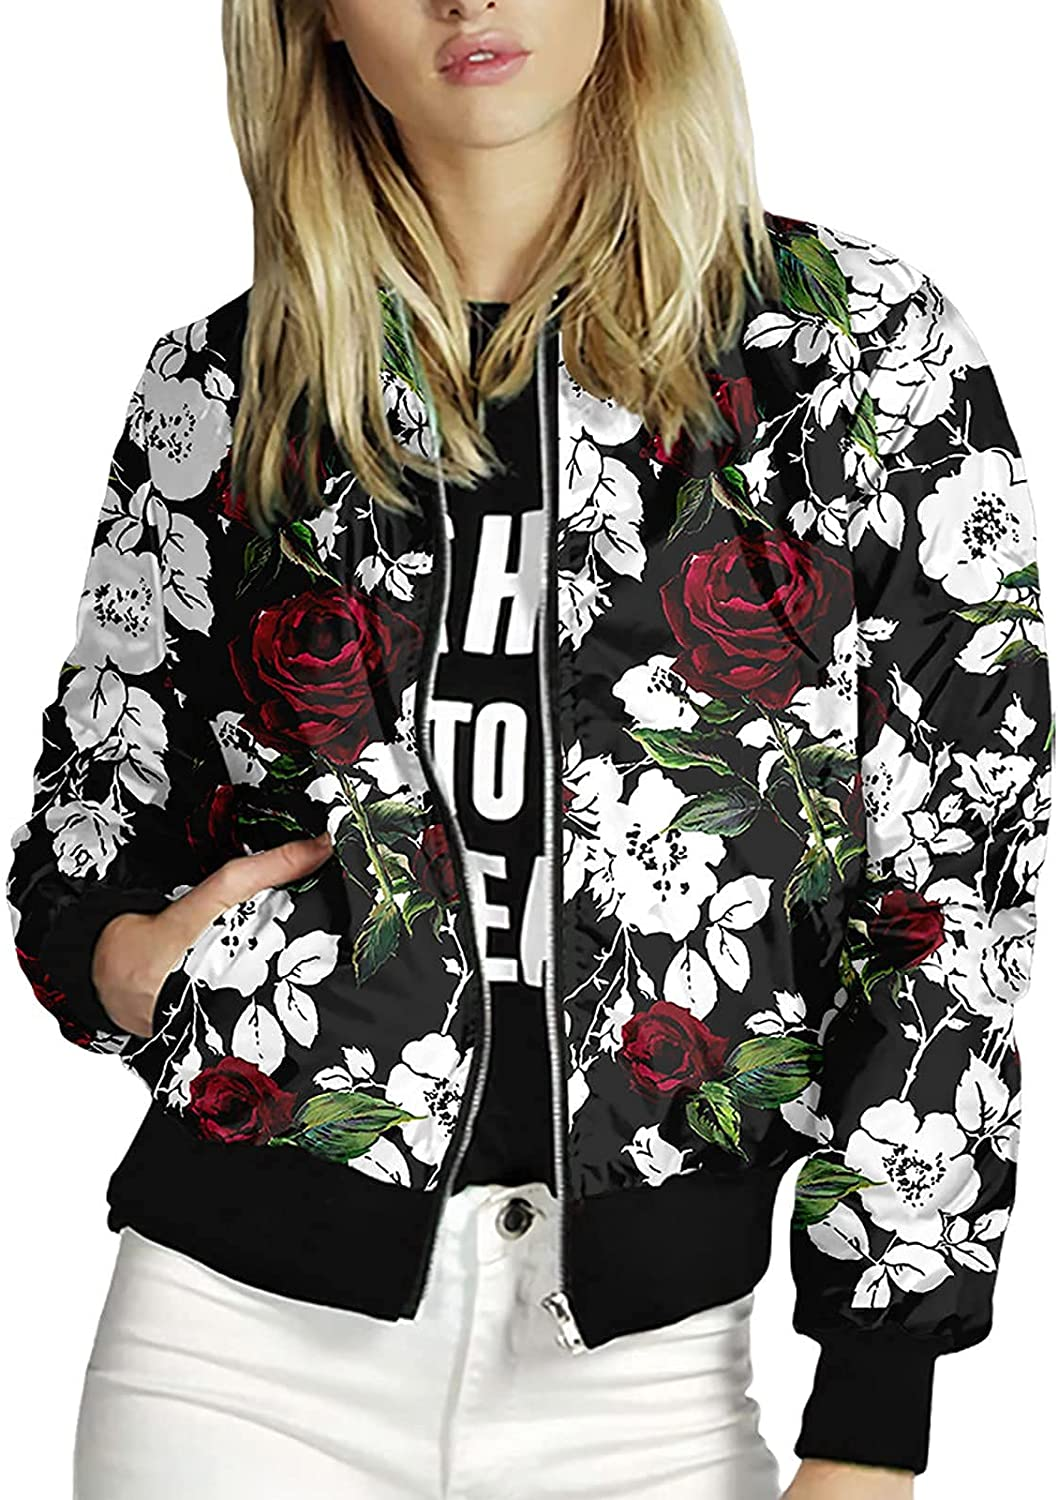 Women's Baseball High order Jacket Zip Up Fashion Bomber All stores are sold Jackets Flora Moto